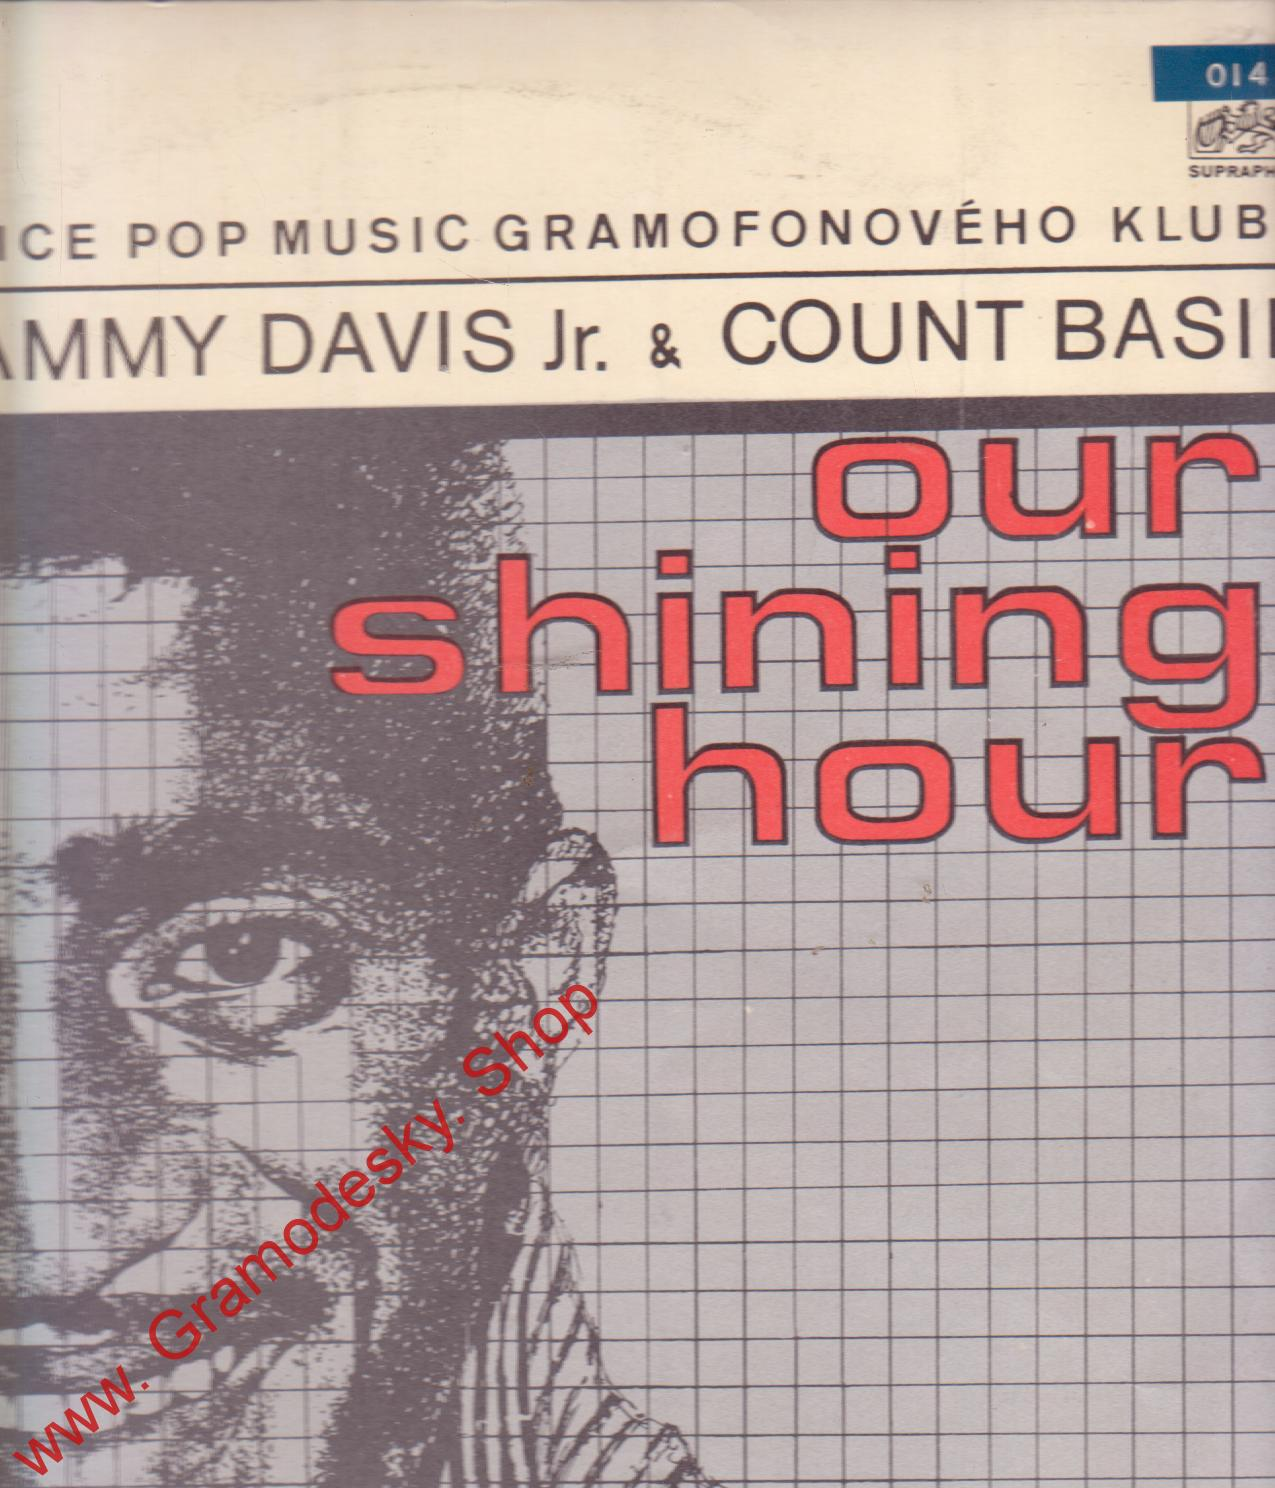 LP Sammy Davis Jr. a Count Basie, Our Shining Hour, 1969, 1 13 0644 stereo